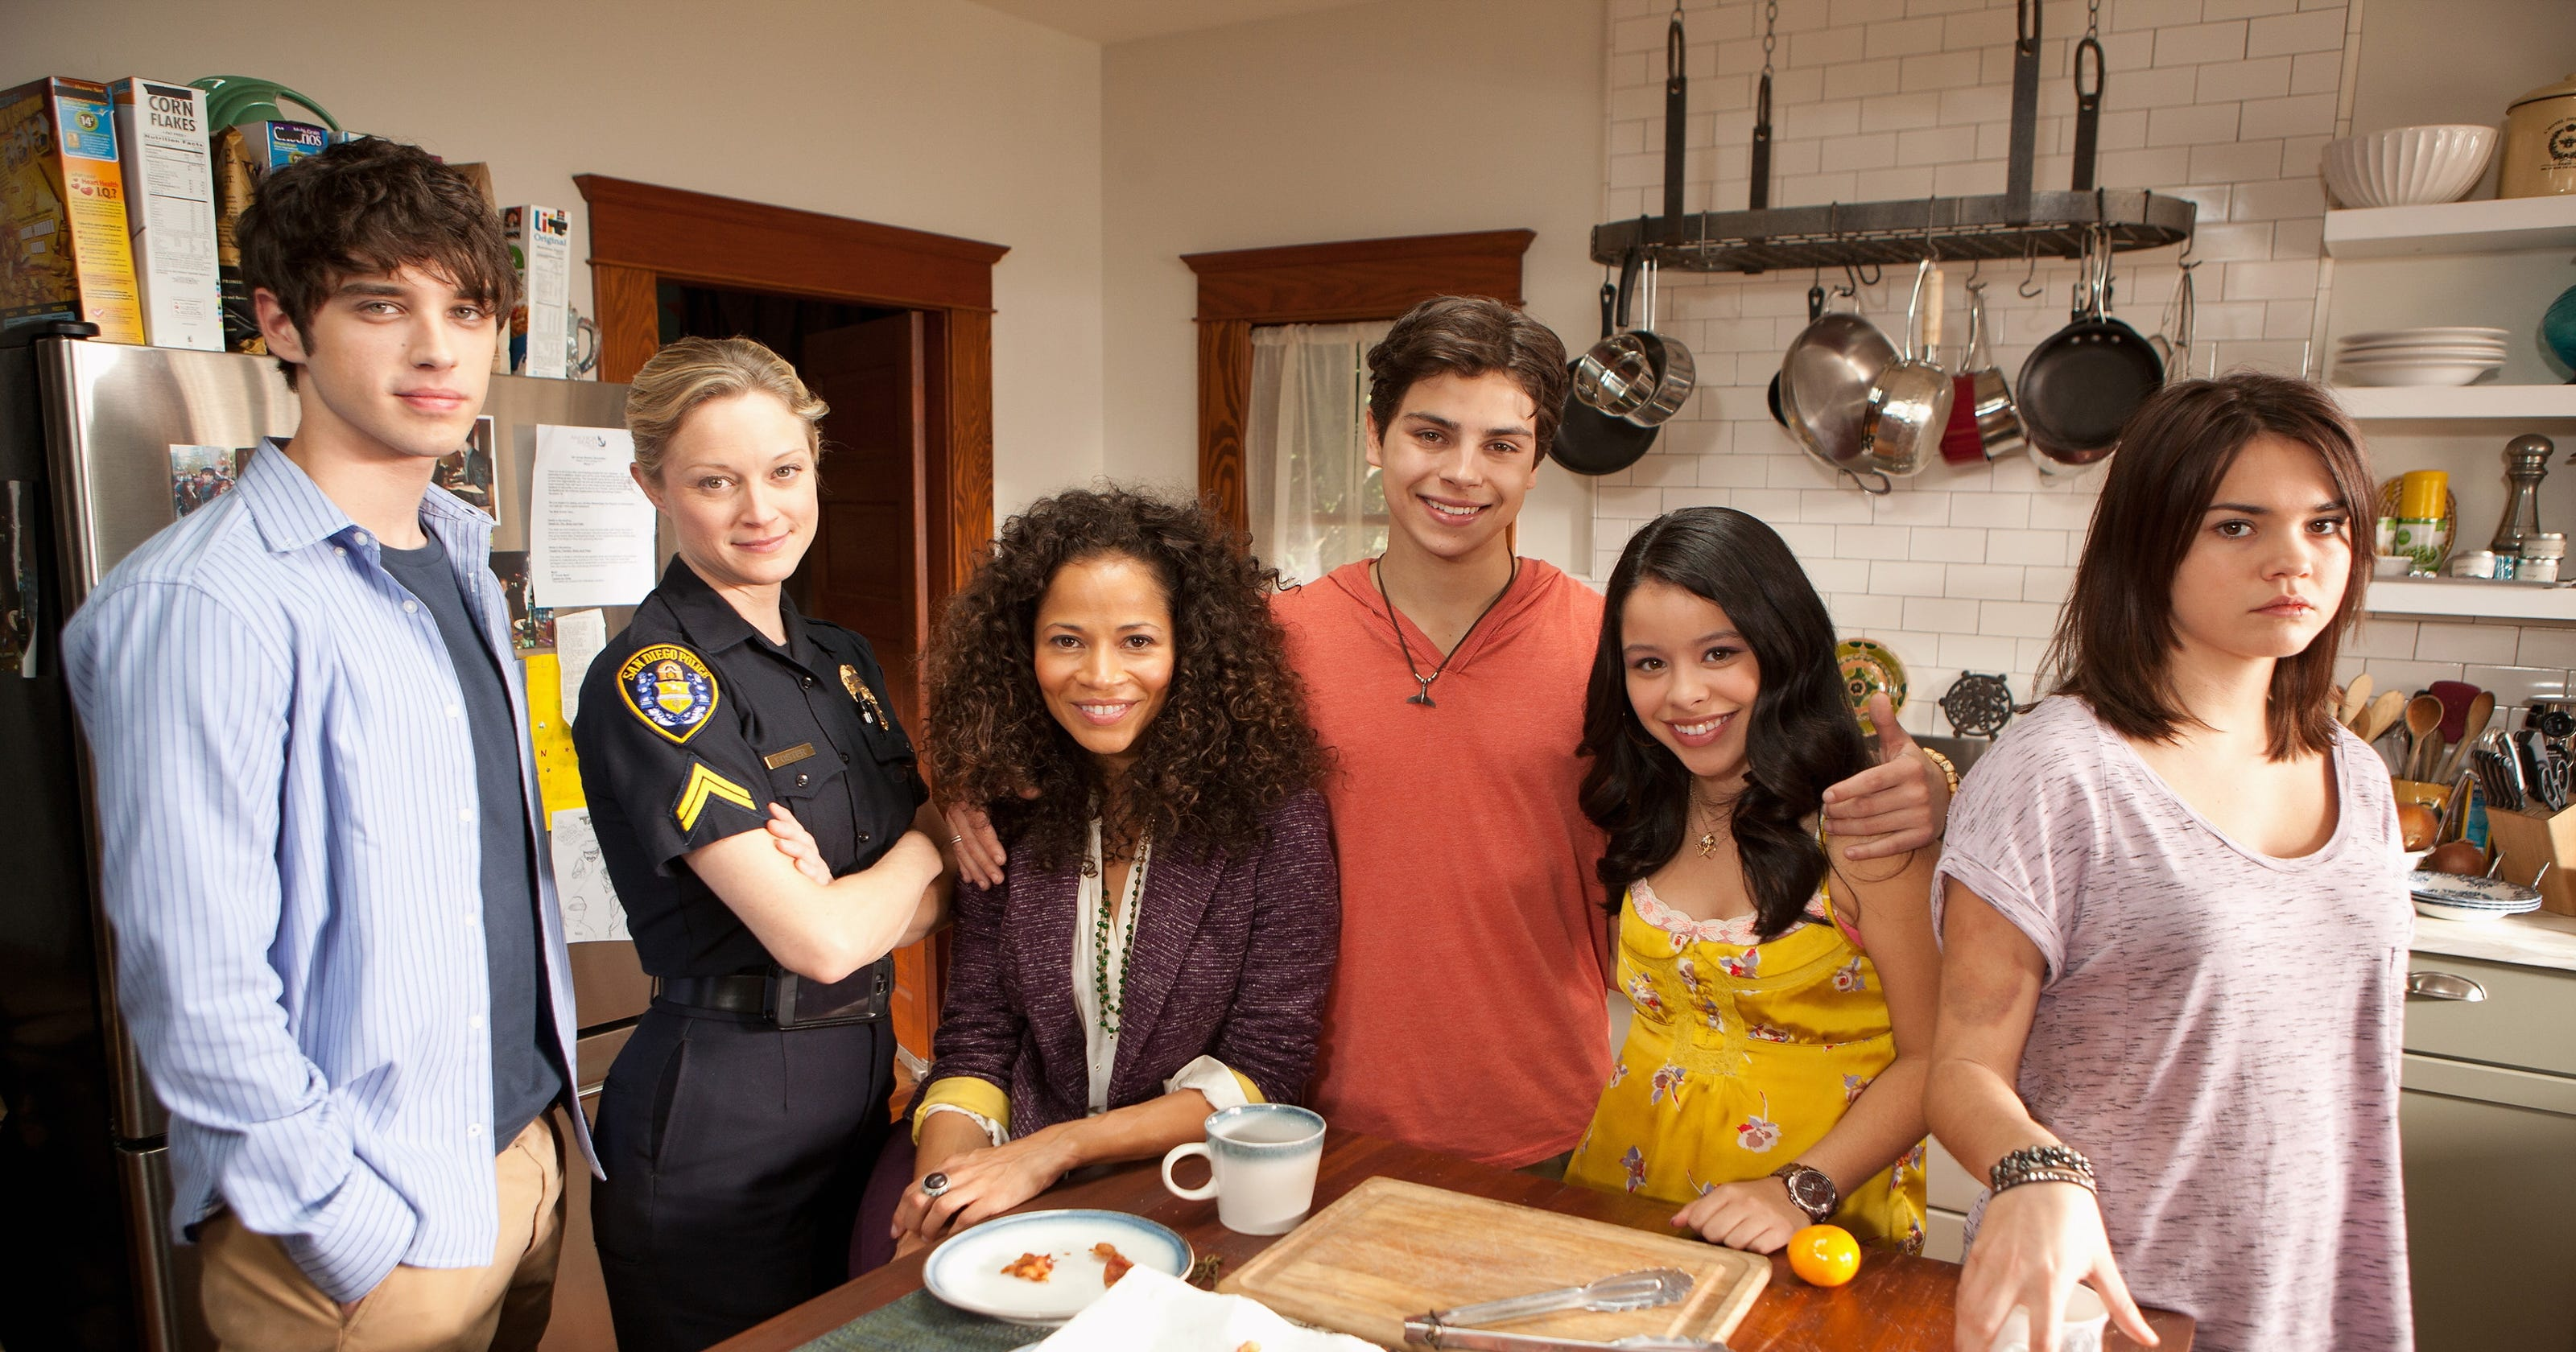 5 episodes of 'the fosters' that will lift your spirits